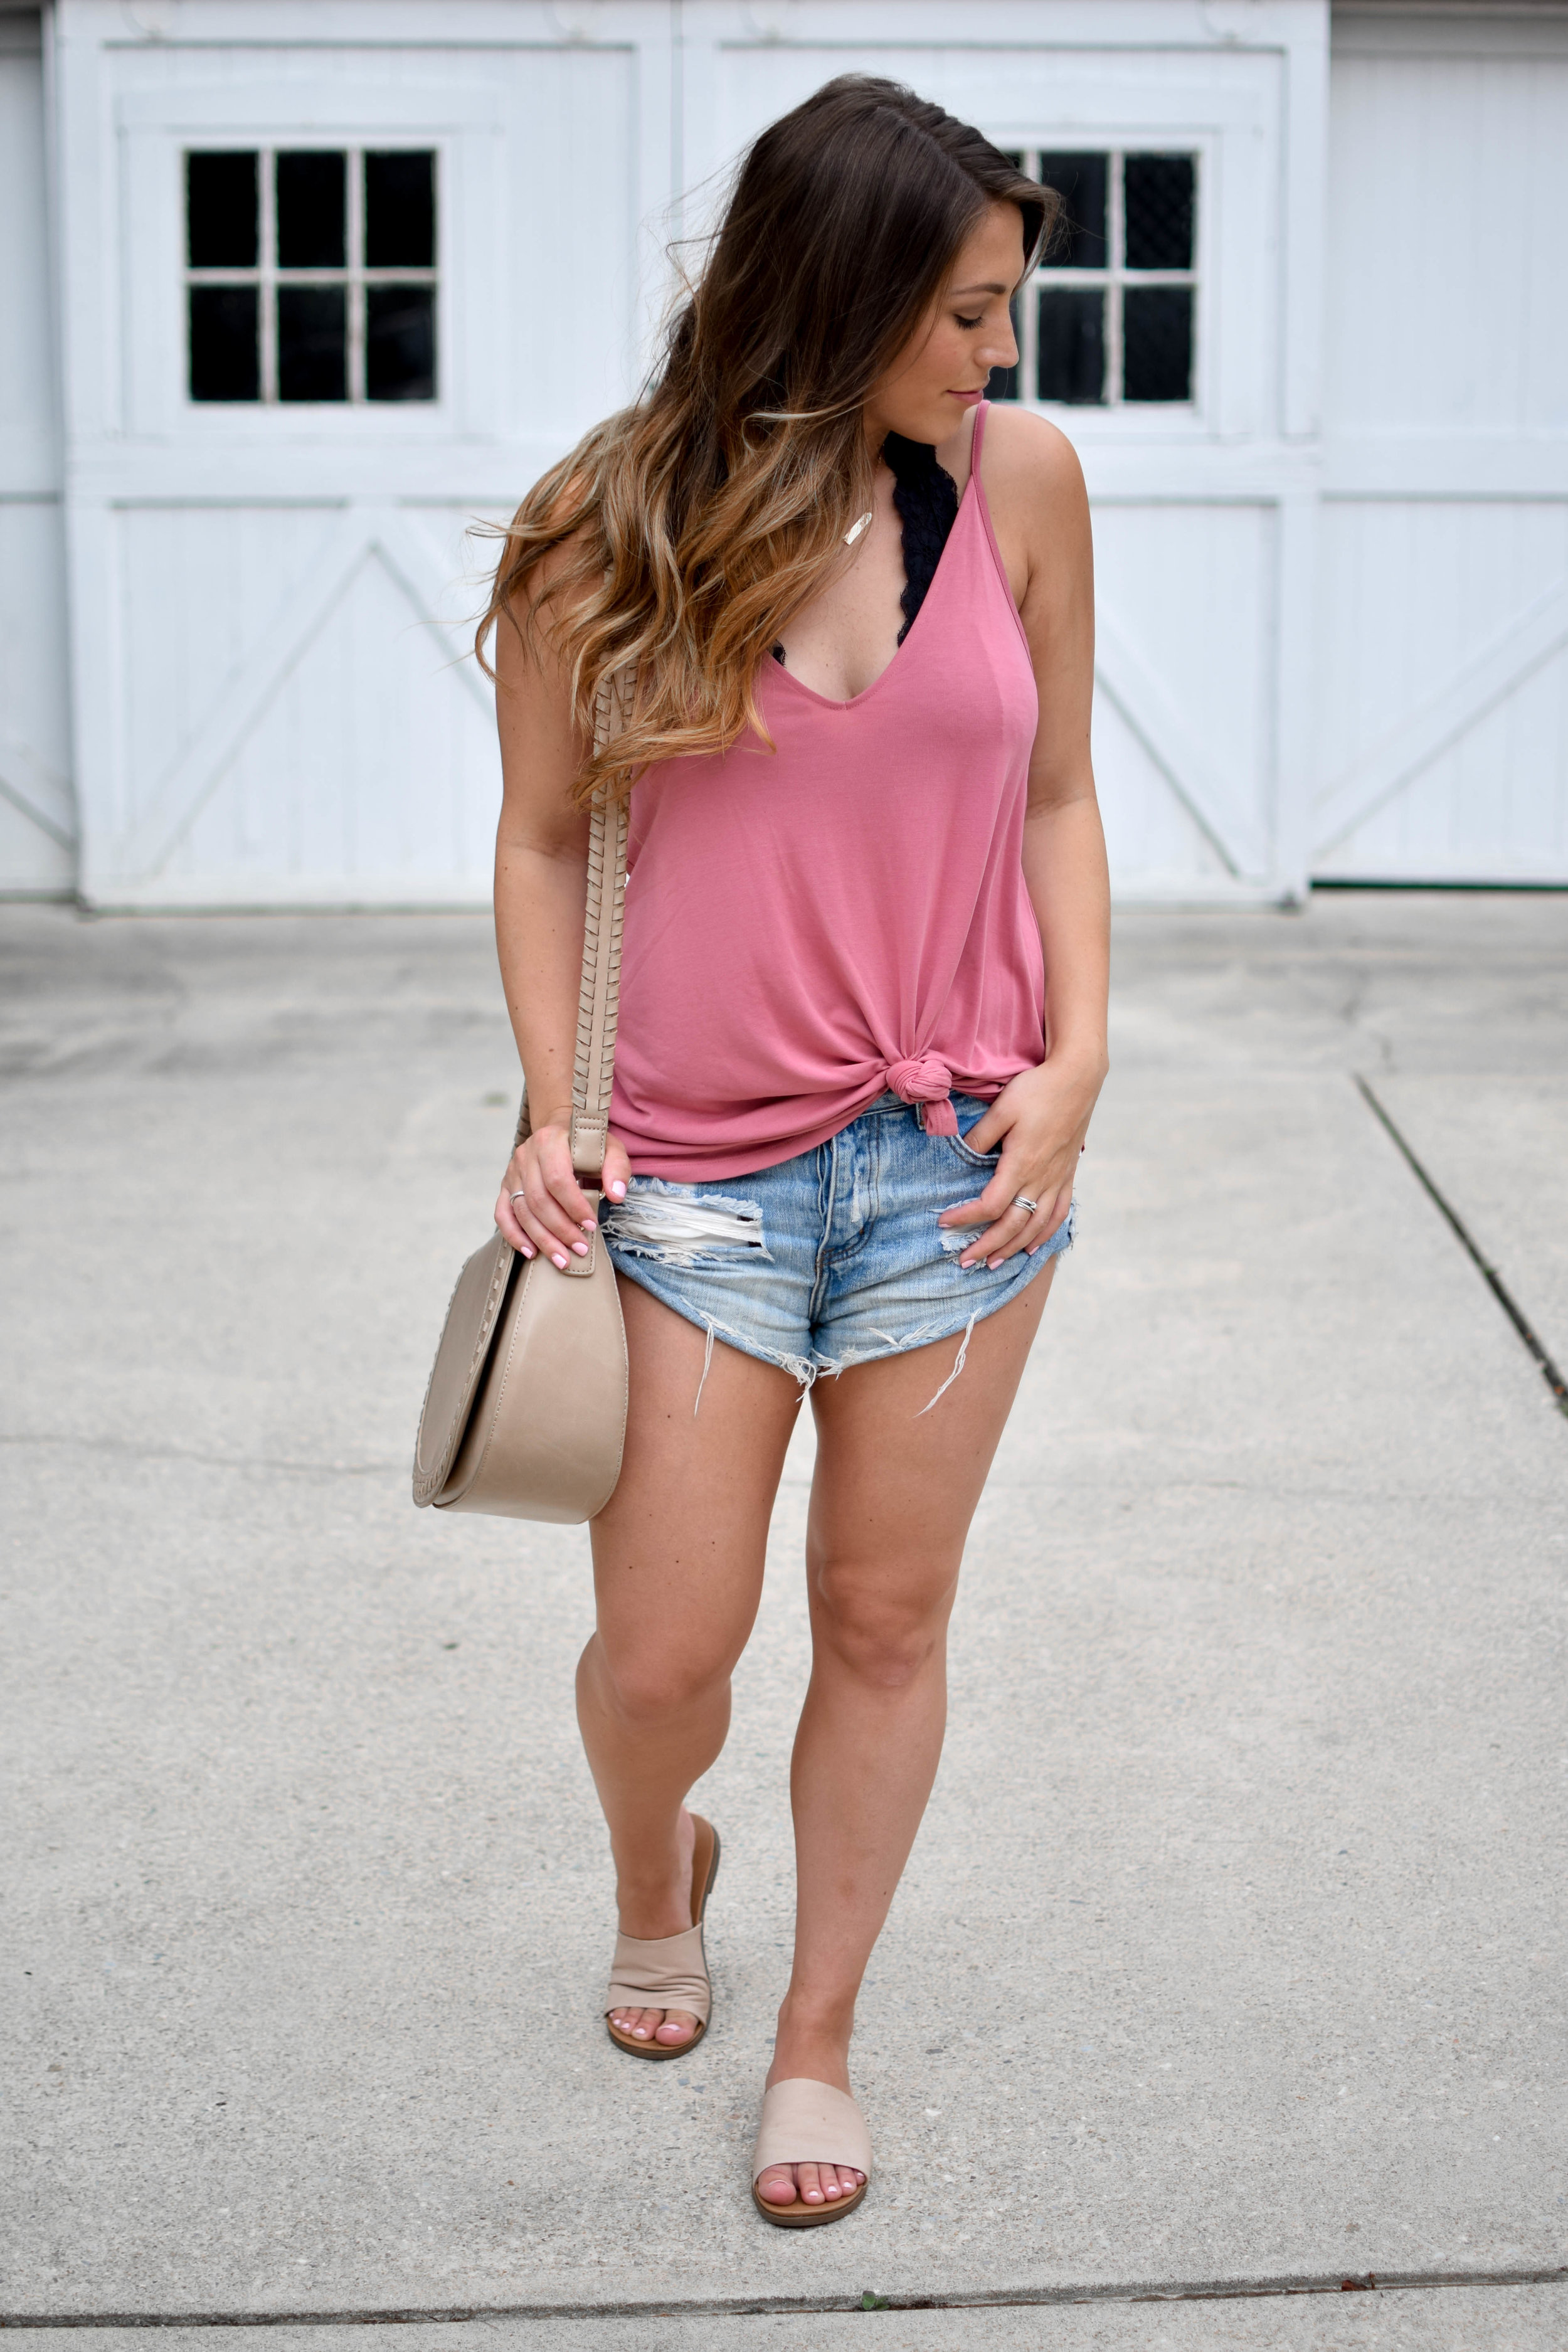 nell + rose pink staycation tank, one teaspoon shorts, Steve Madden slides, sole society cross body bag, summer outfit idea